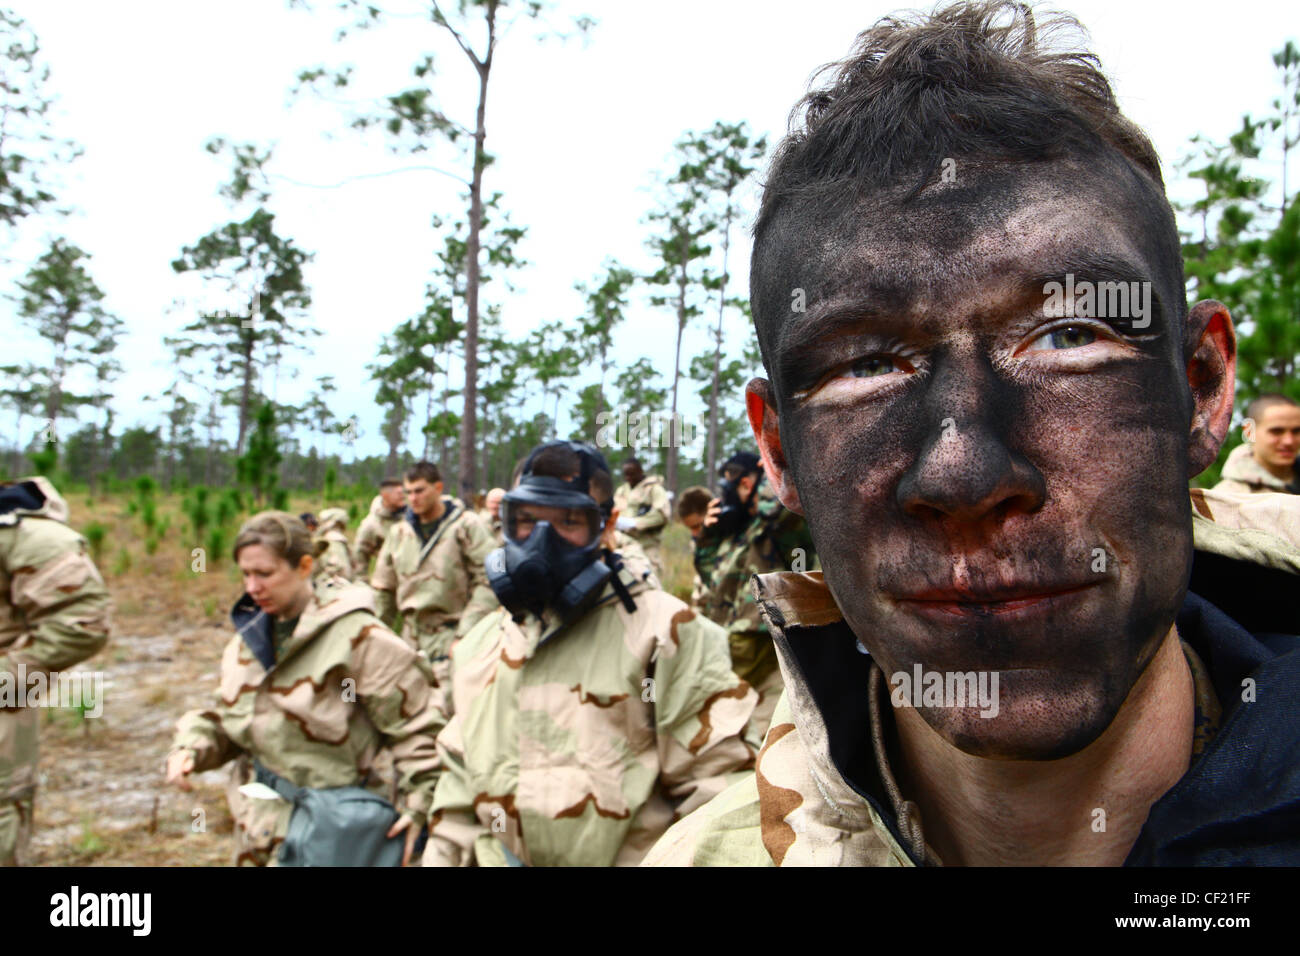 CAMP LEJEUNE, N.C. - M291 Decontamination Powder covers Cpl. Bart Steinburg's, a data system specialist with - Stock Image